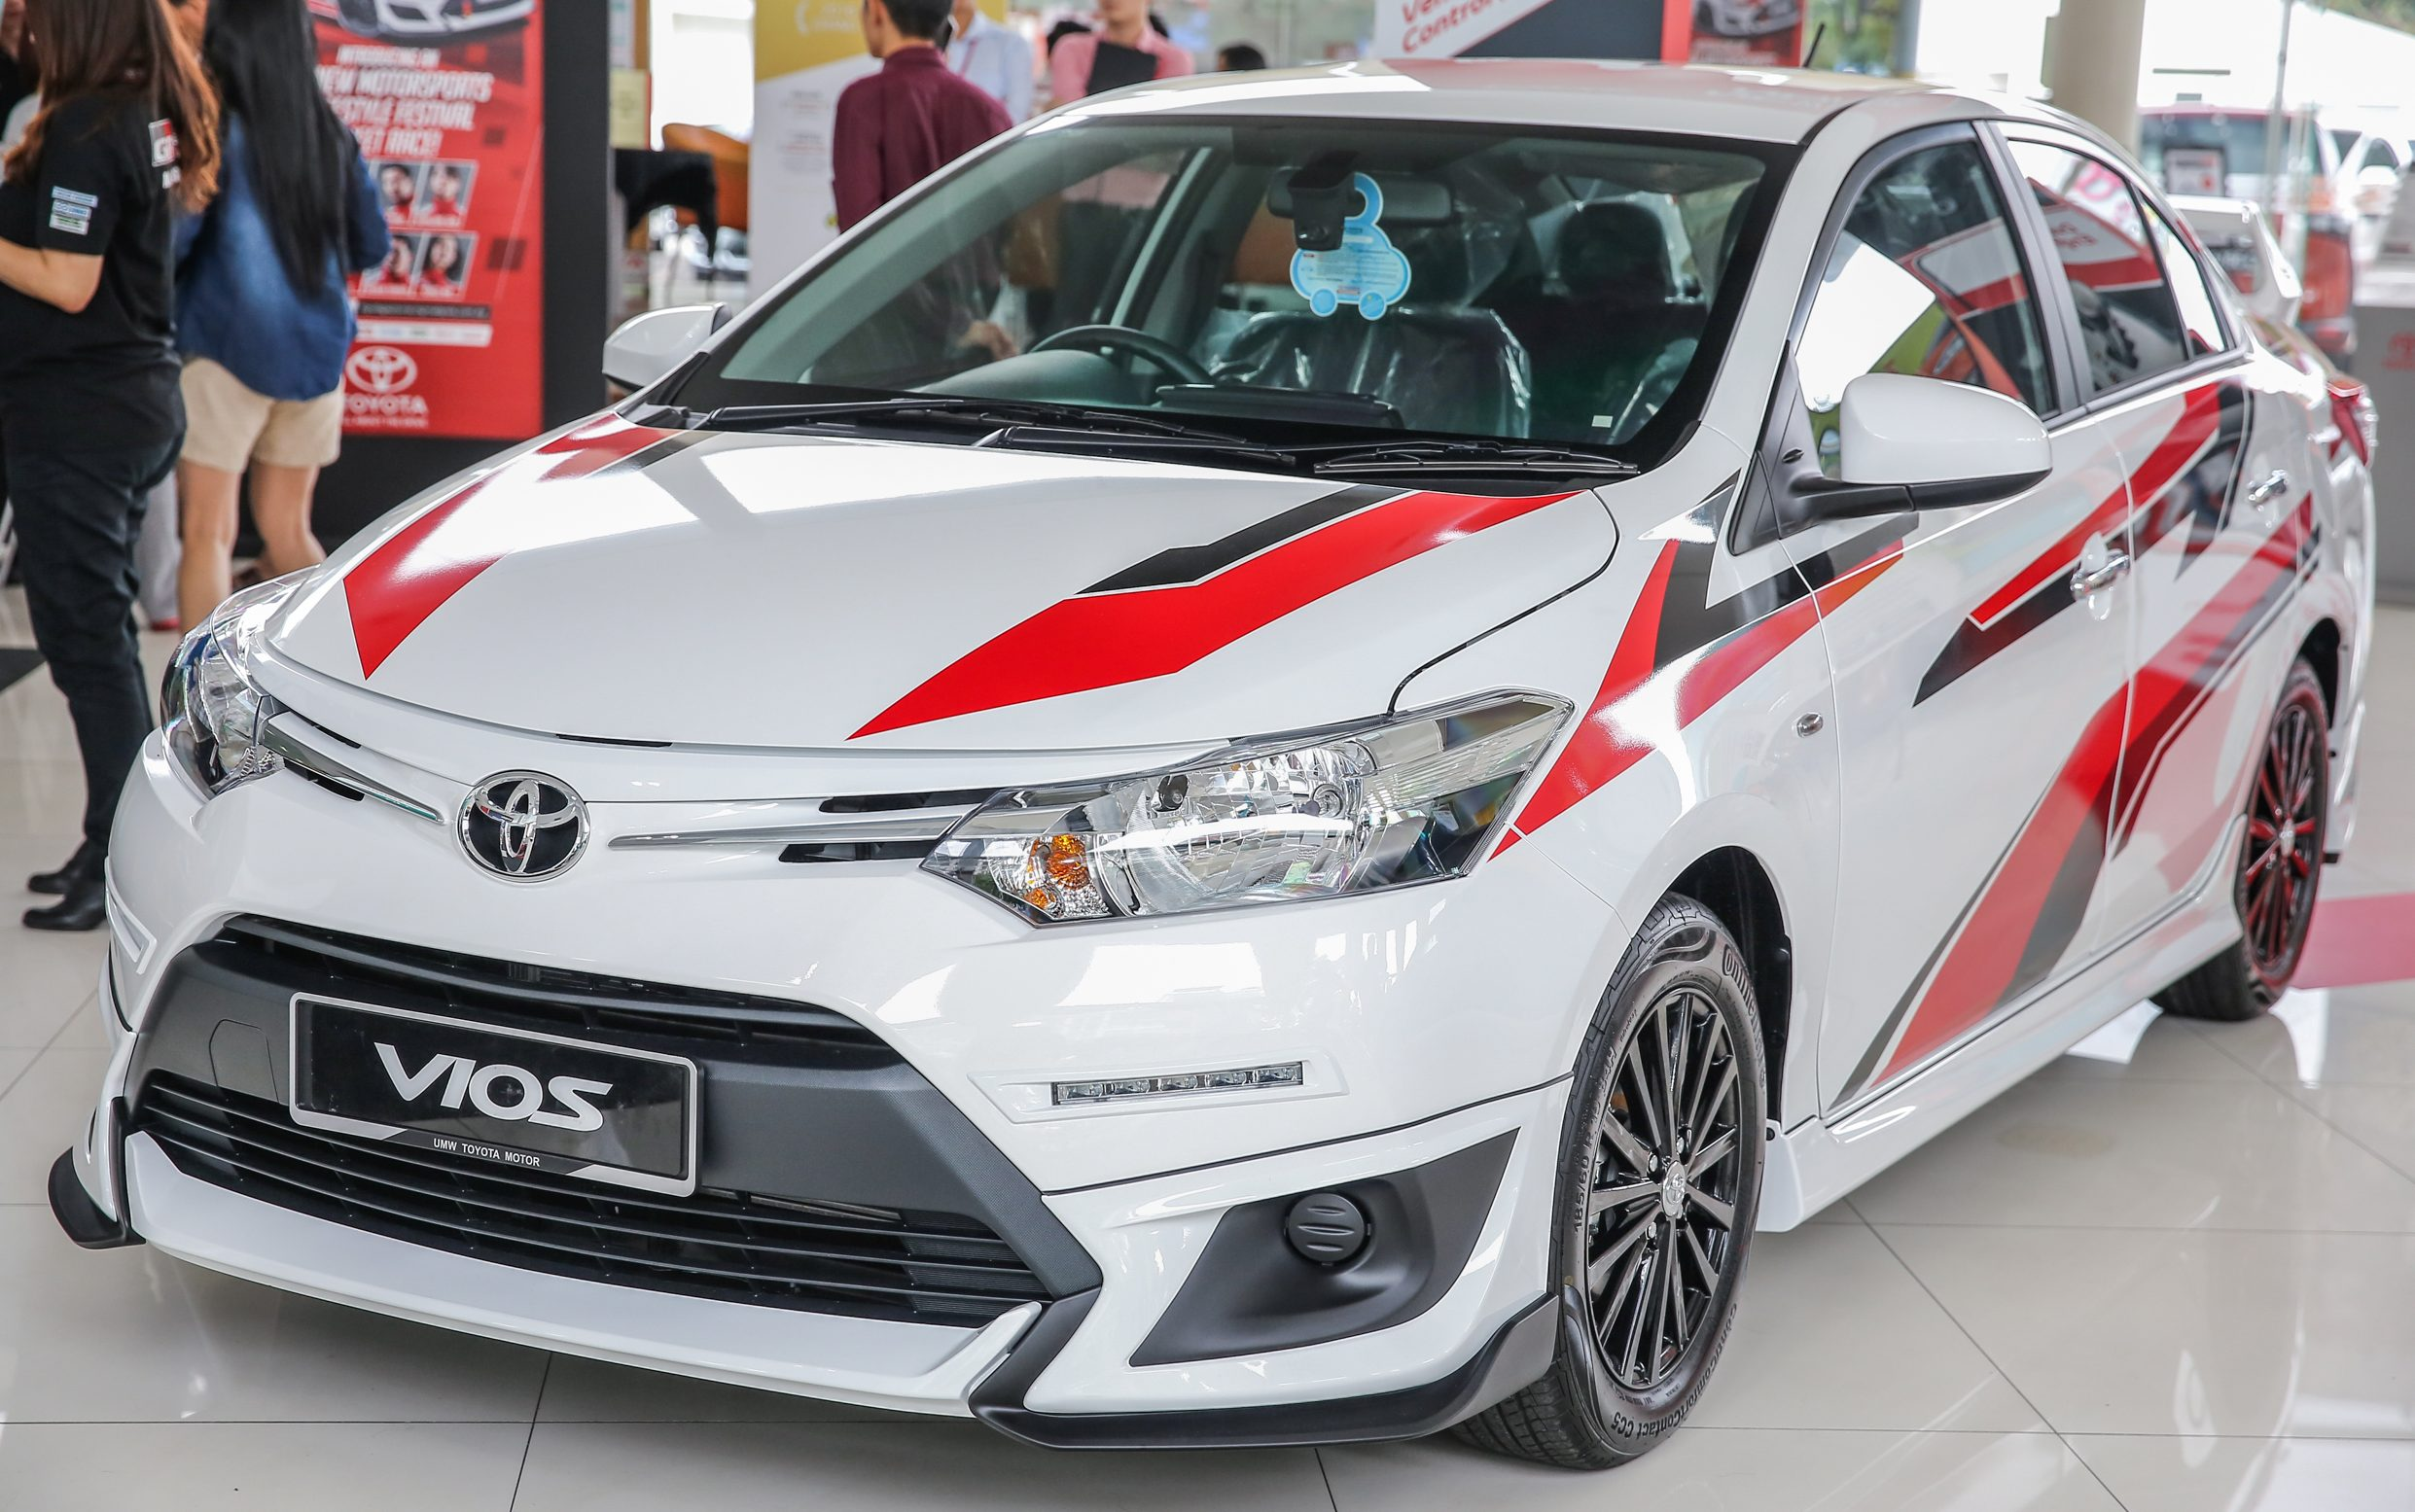 toyota yaris trd sportivo 2018 price all new camry 2017 pantip 新车图集 vios sport edition 外表张扬 更运动化 paul tan 汽车资讯网